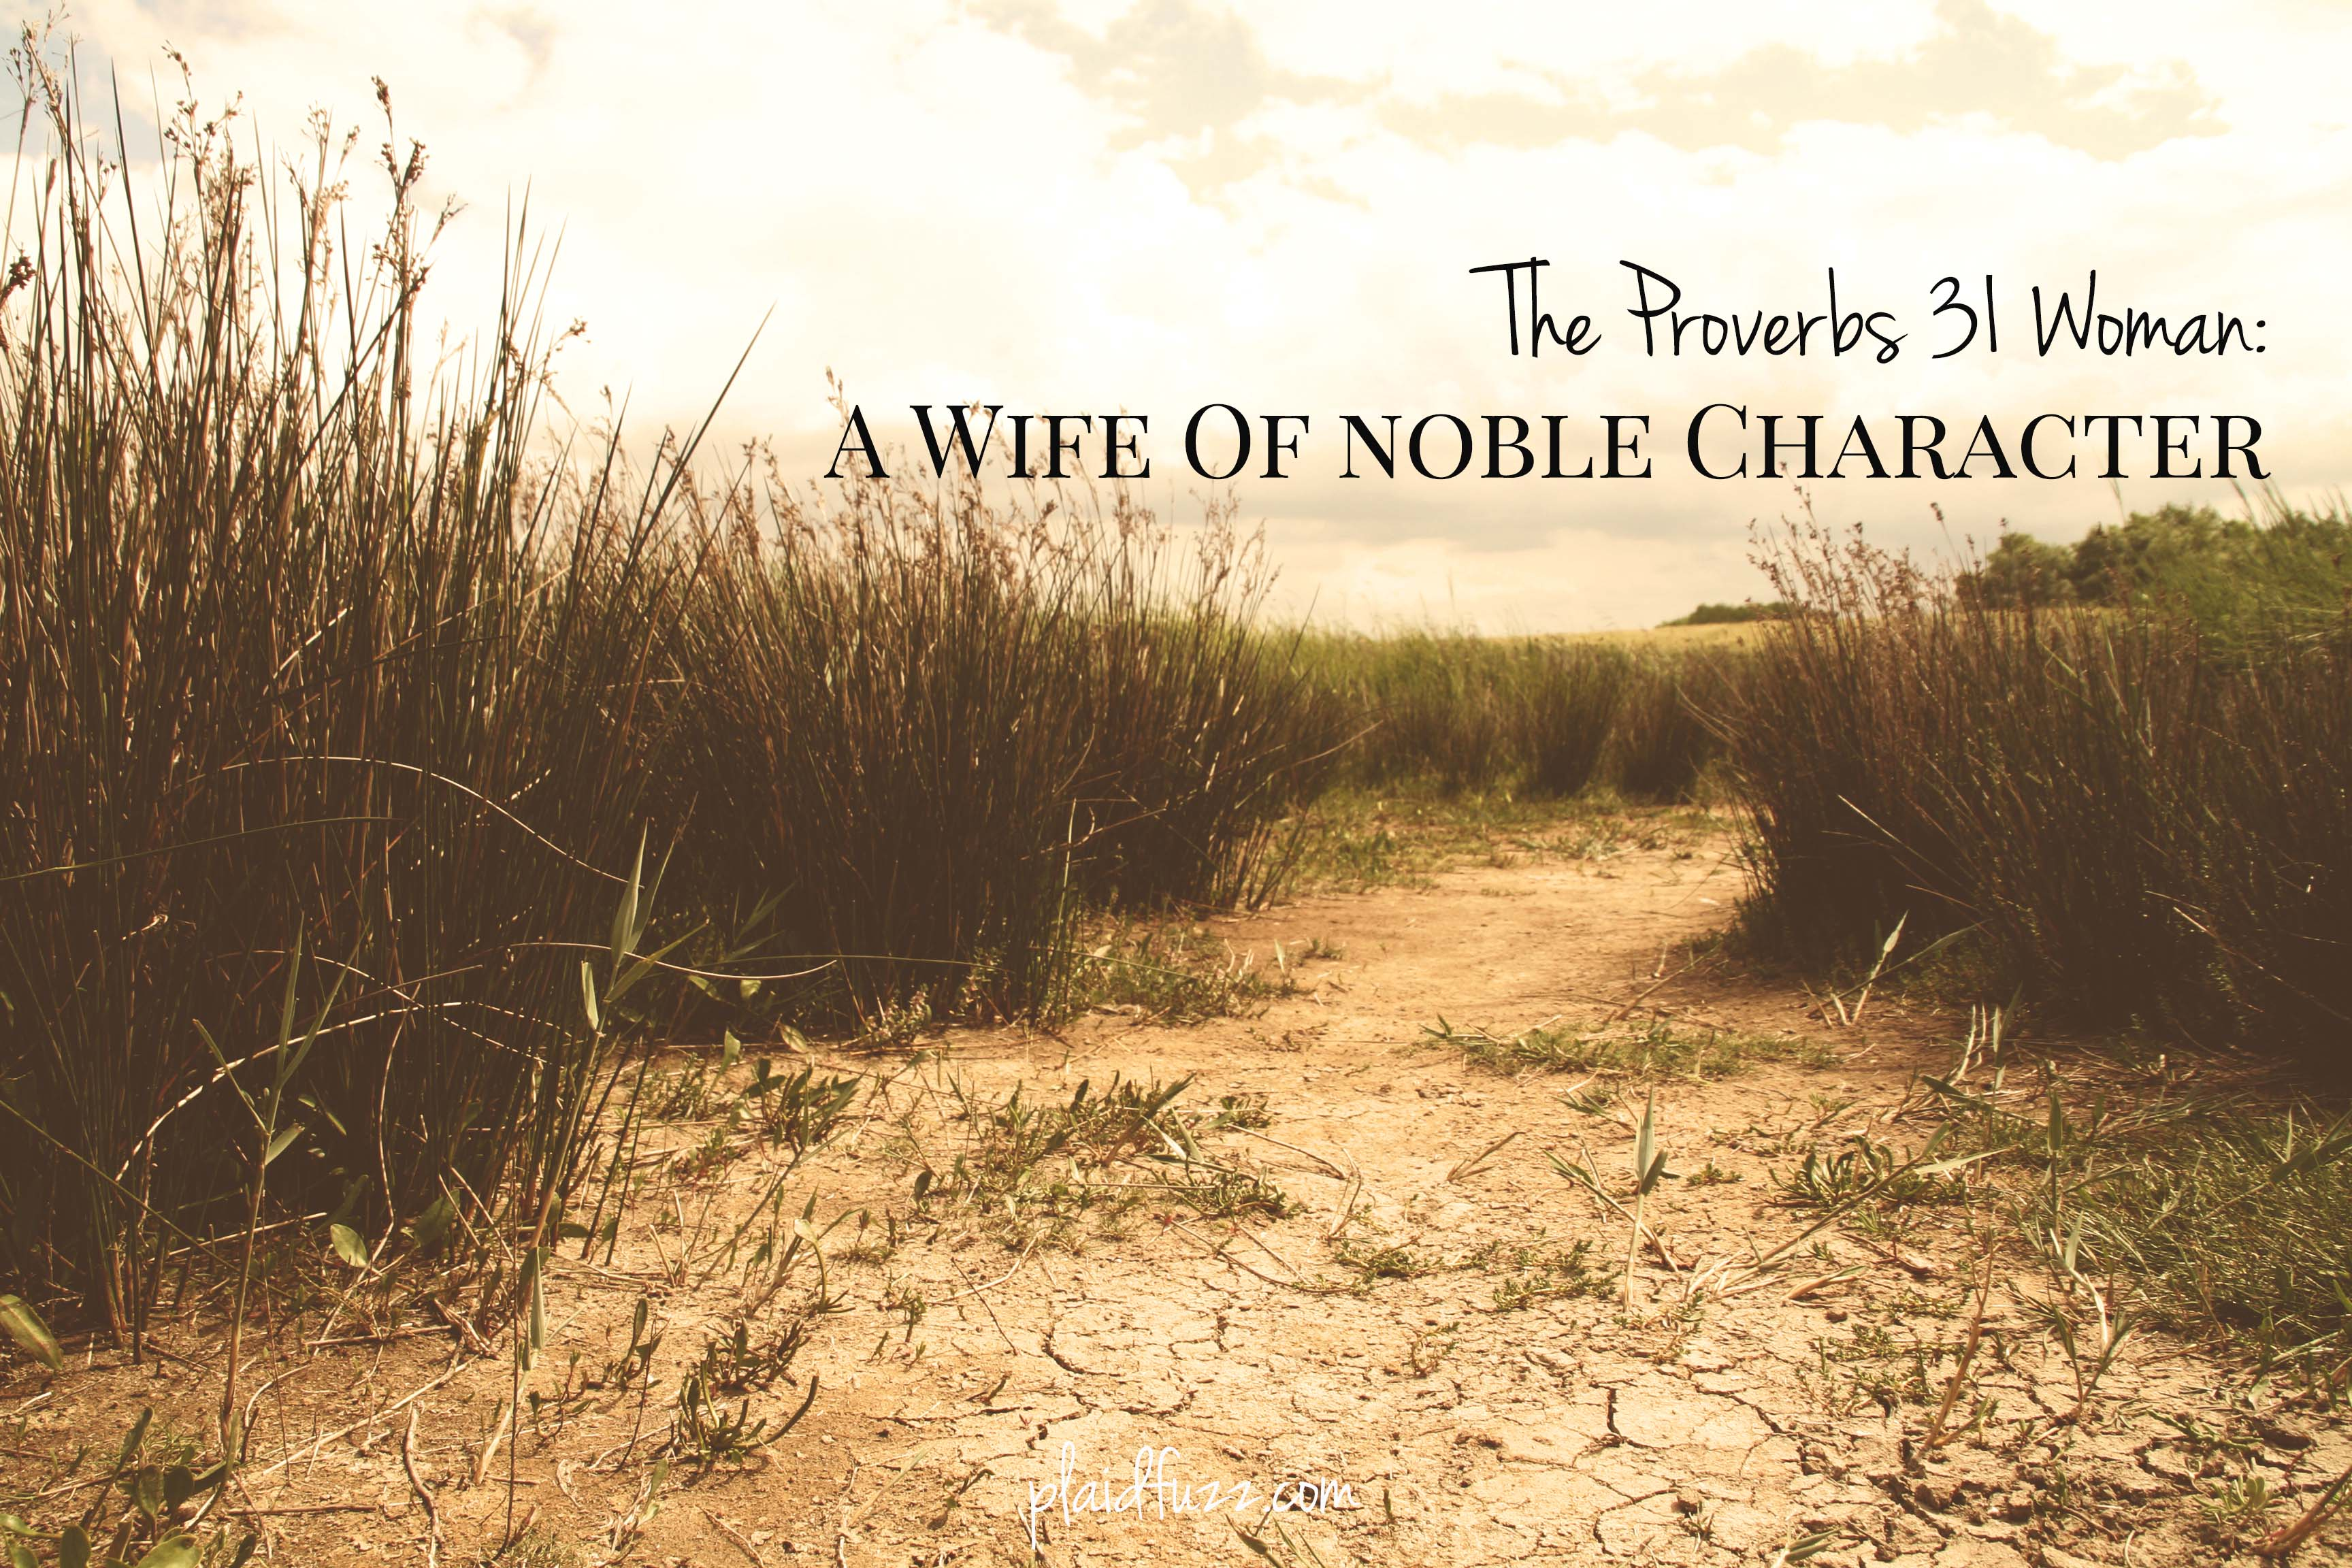 The Proverbs 31 Woman: A Wife Of Noble Character